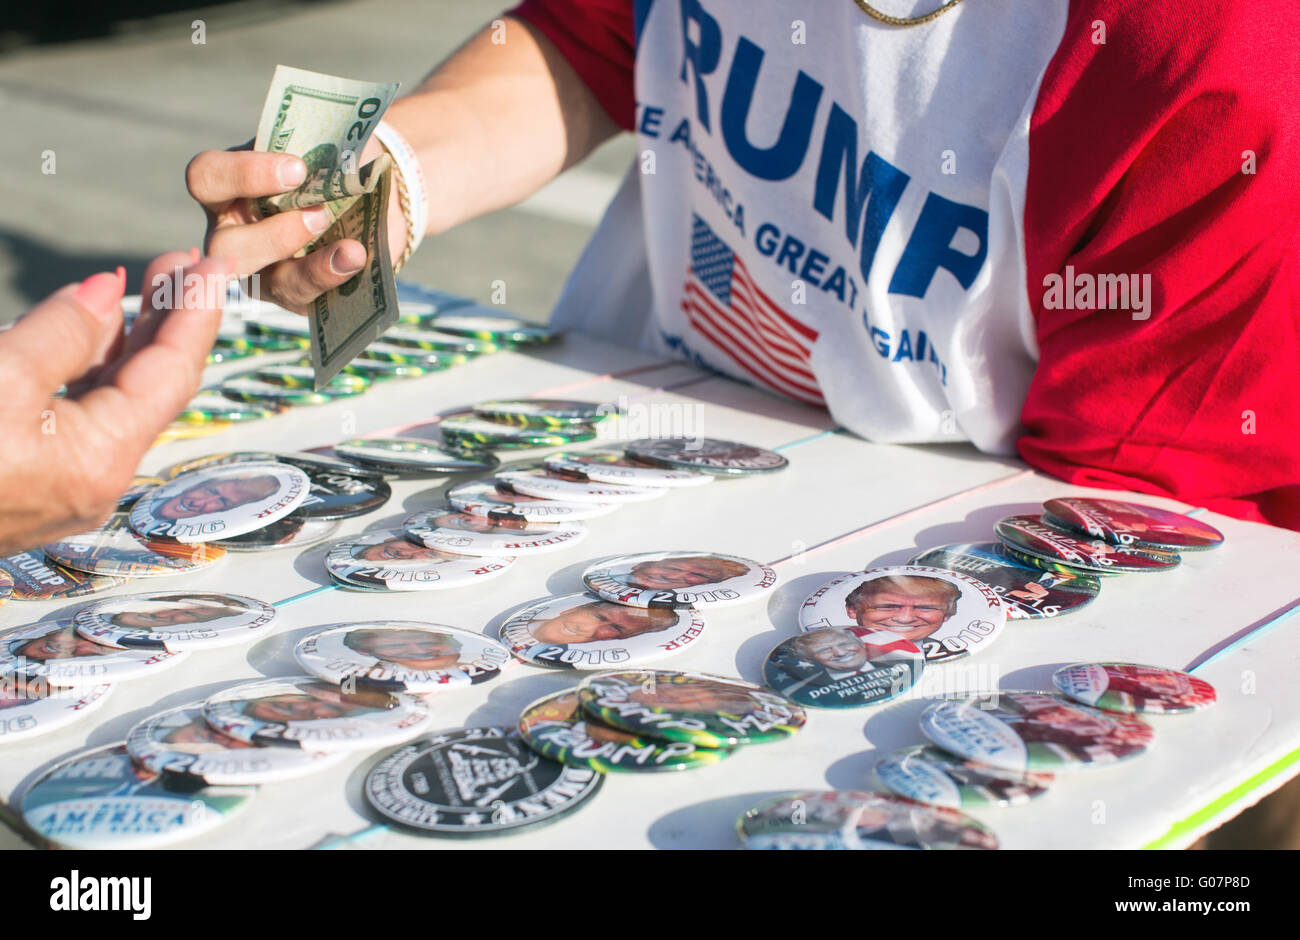 Donald Trump for president campaign badges on sale at a rally in California. - Stock Image